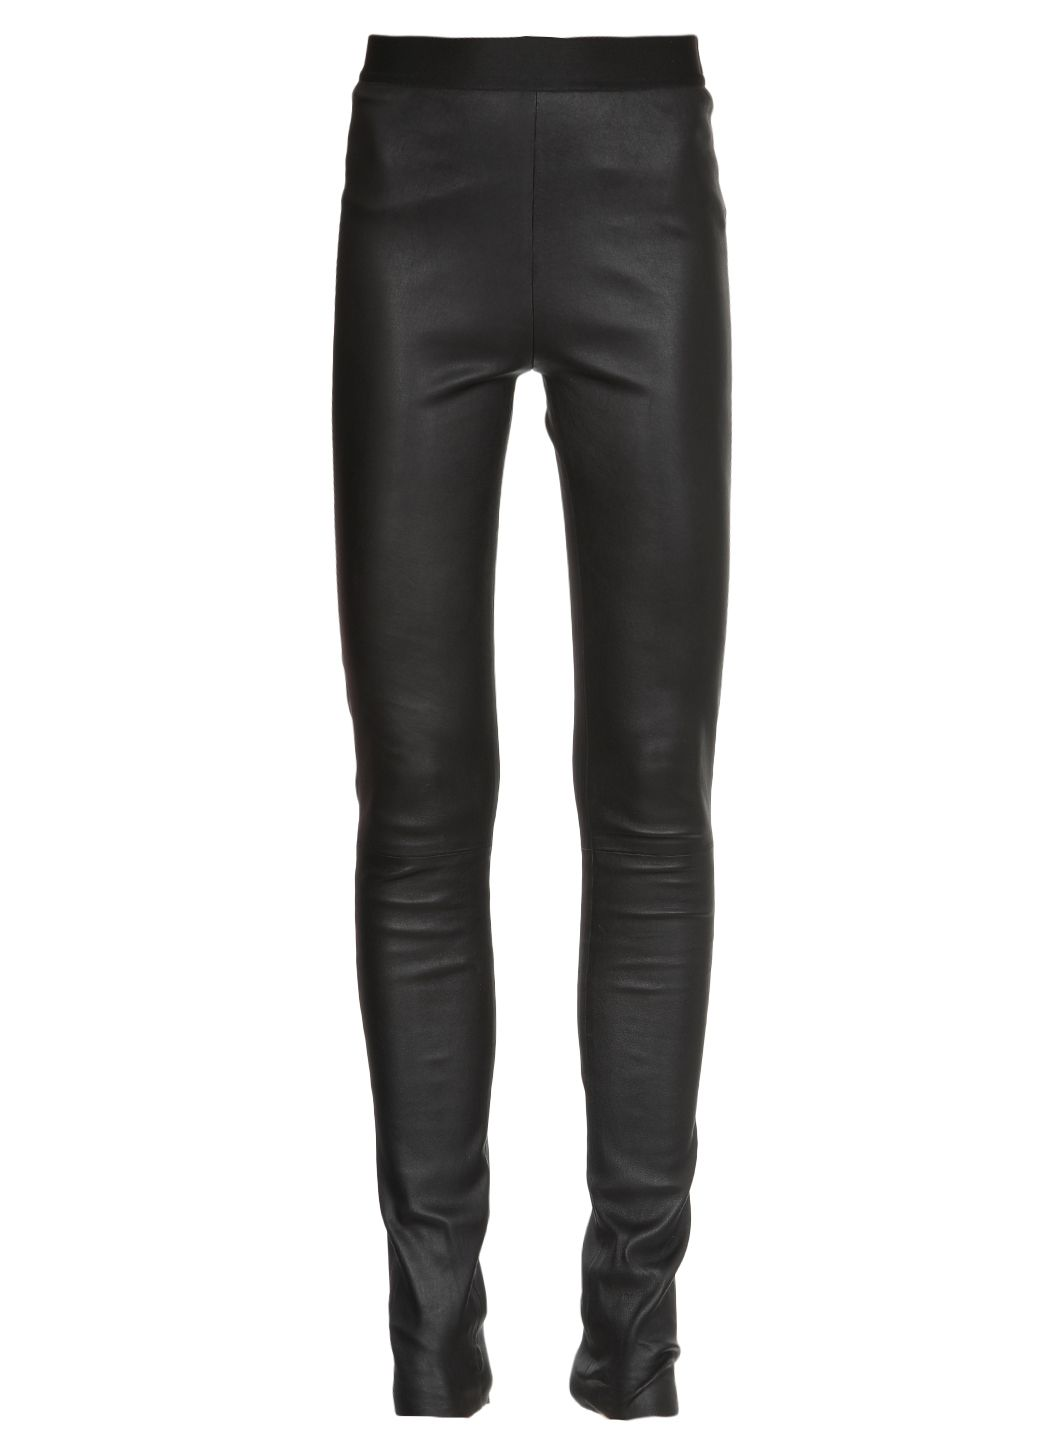 Leggins in pelle